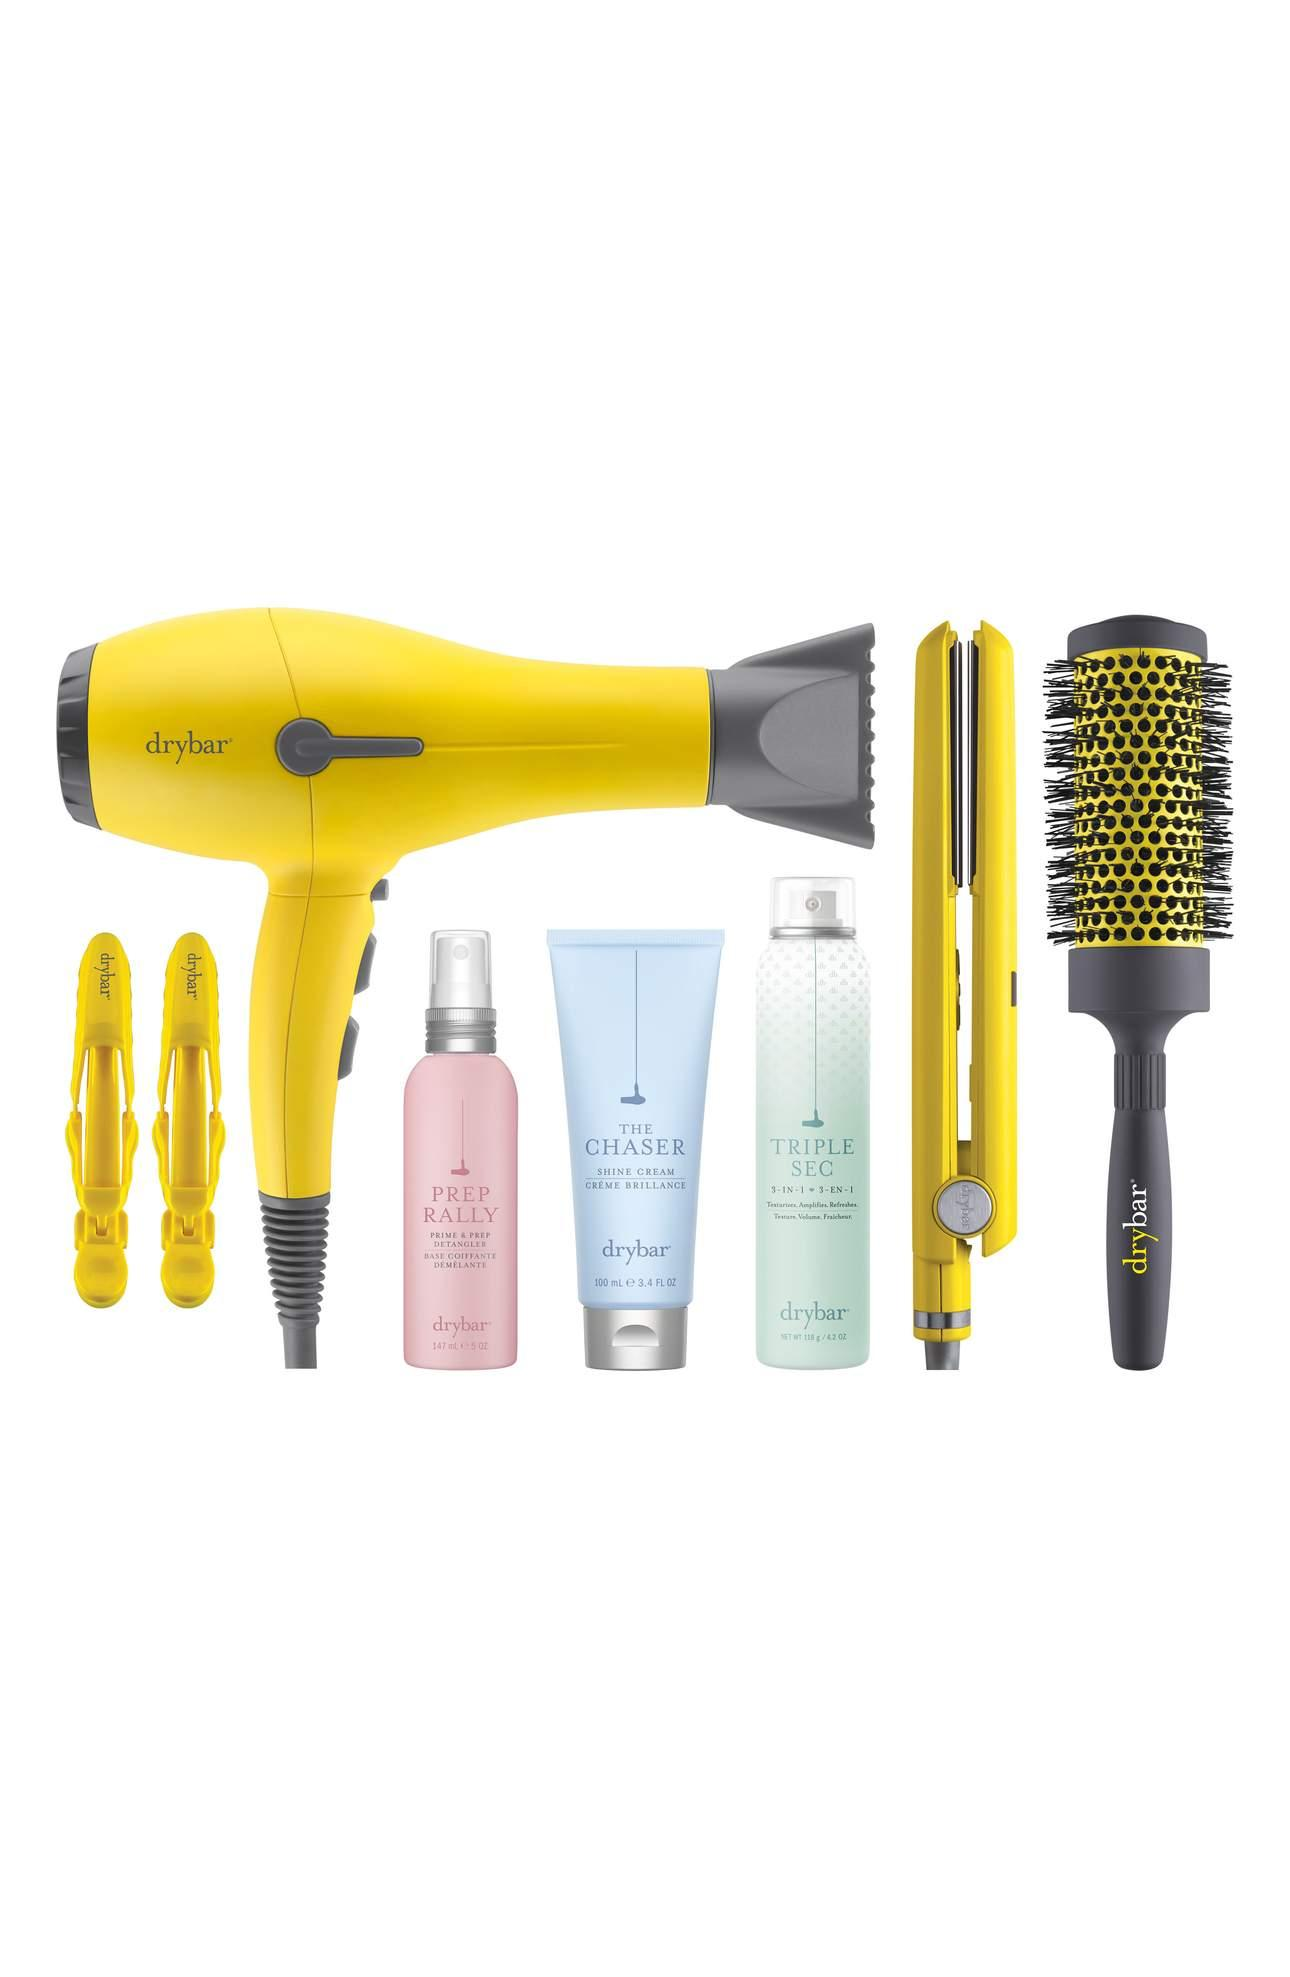 <p>DRYBAR Buttercup Big Bundle Collection - $299. This is a bit of a splurge, but so worth it. DRYBAR is a complete game-changer when it comes to your hair game. Does your lady have a full head of hair? If the answer is yes, BUY THIS. Also note, it's a limited edition set. Cost: $299.00 ($471 Value). (Image: Nordstrom){&nbsp;}<br></p><p></p>